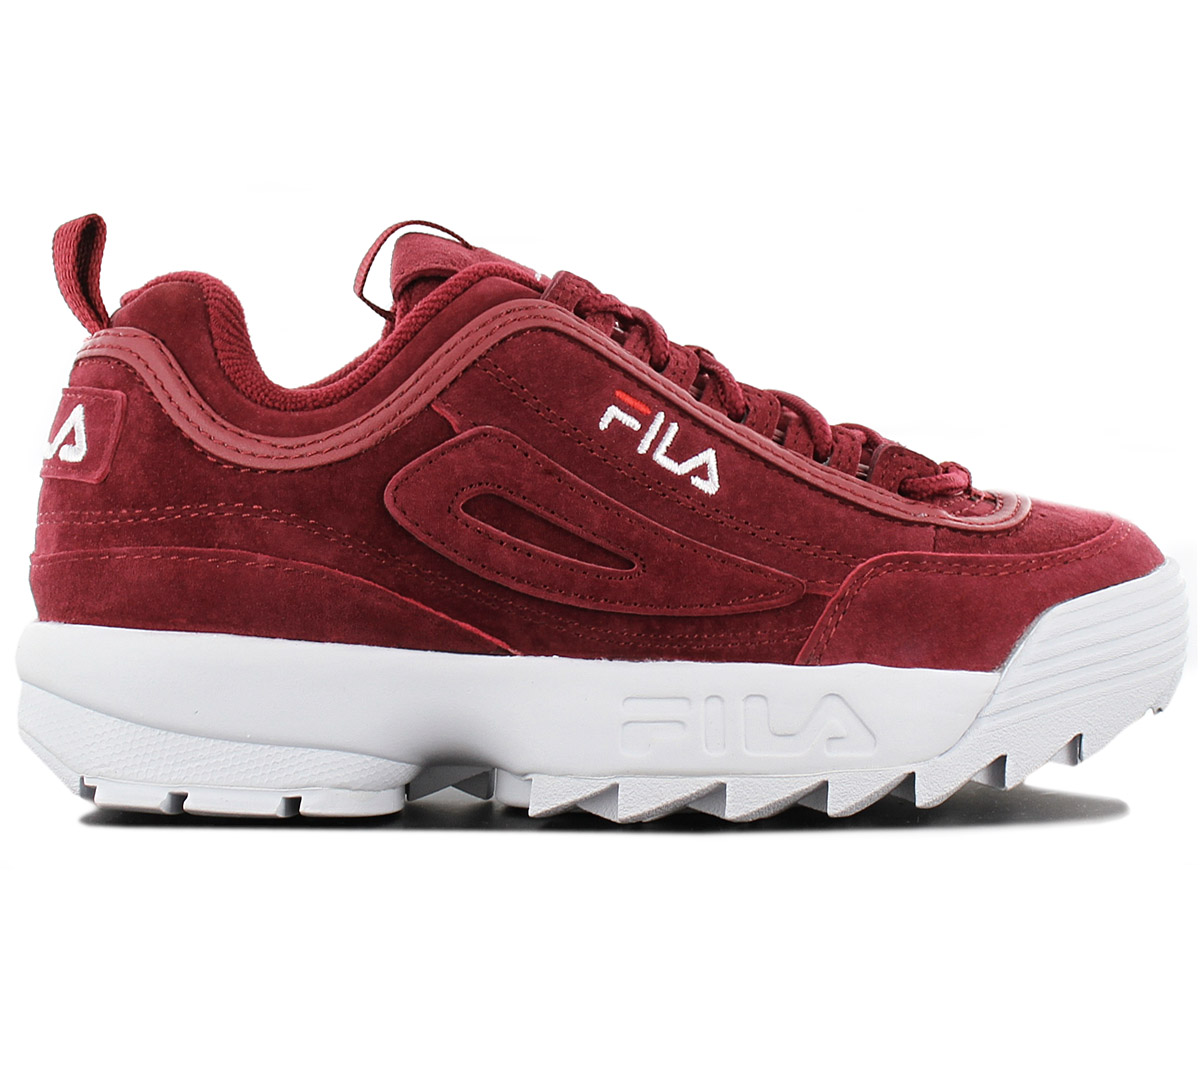 Details about Fila Disruptor Leather S Low Cr Women's Sneaker Shoes Red 1010553.40K New